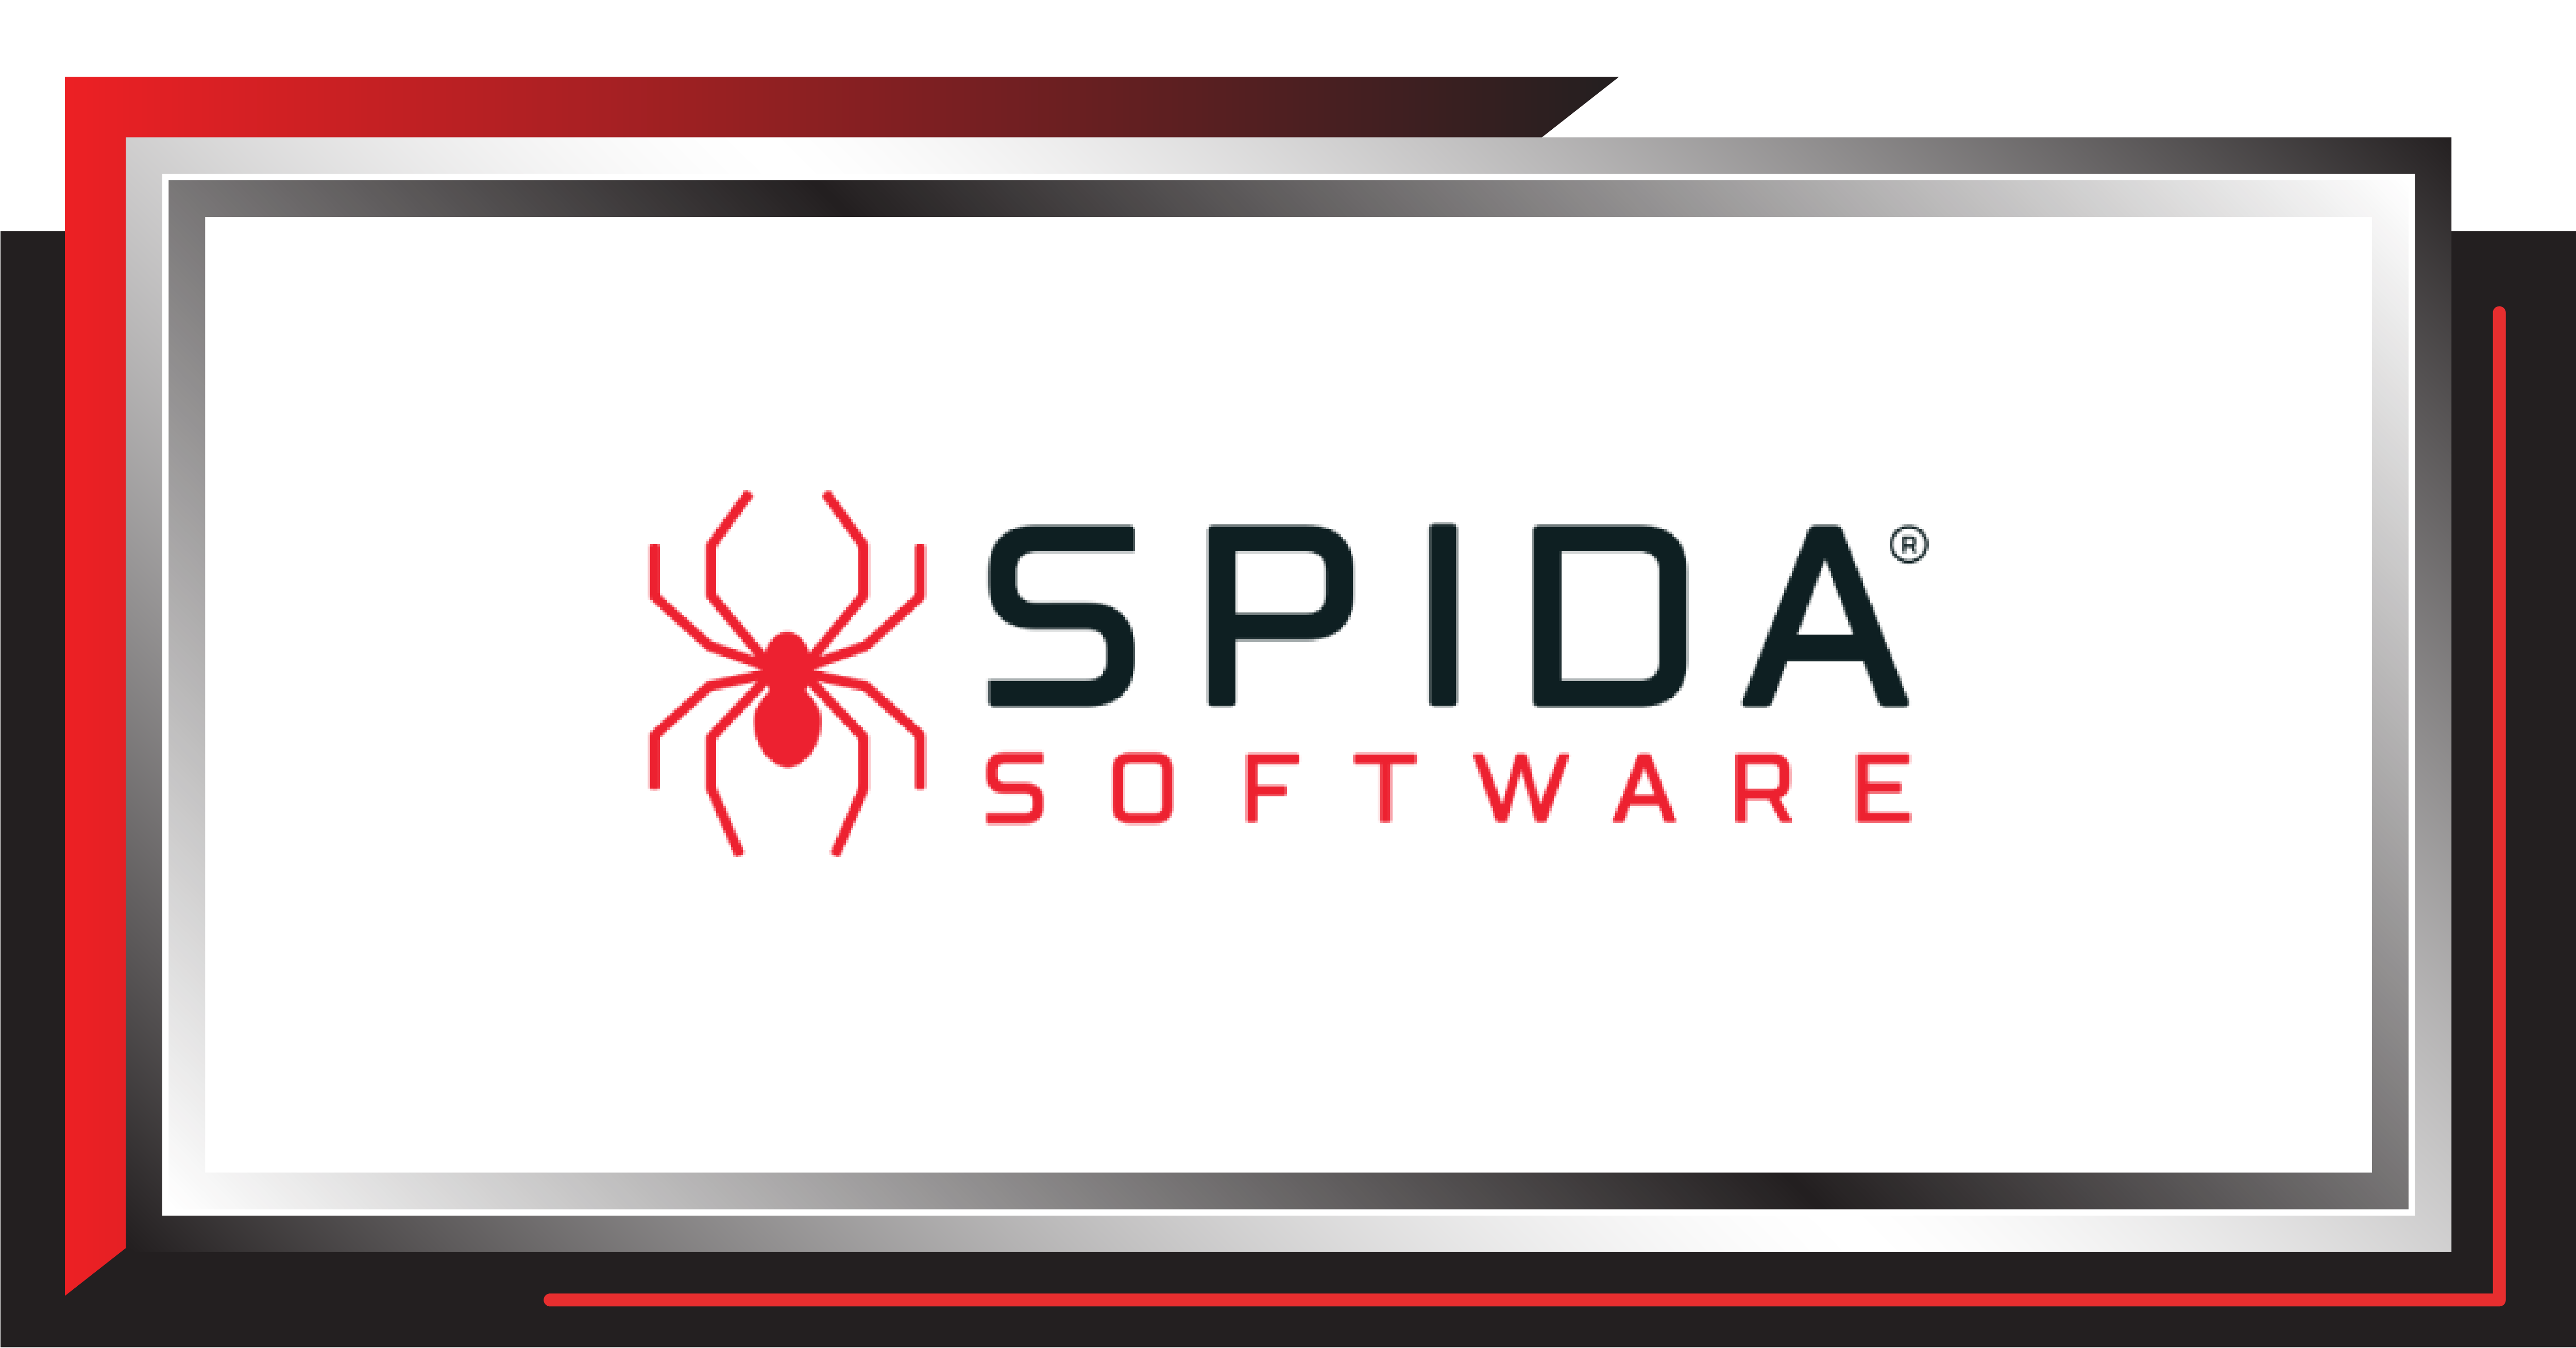 SPIDA® Software Unveils SPIDAmin One Touch Make Ready Workflows and Enhanced Security Features